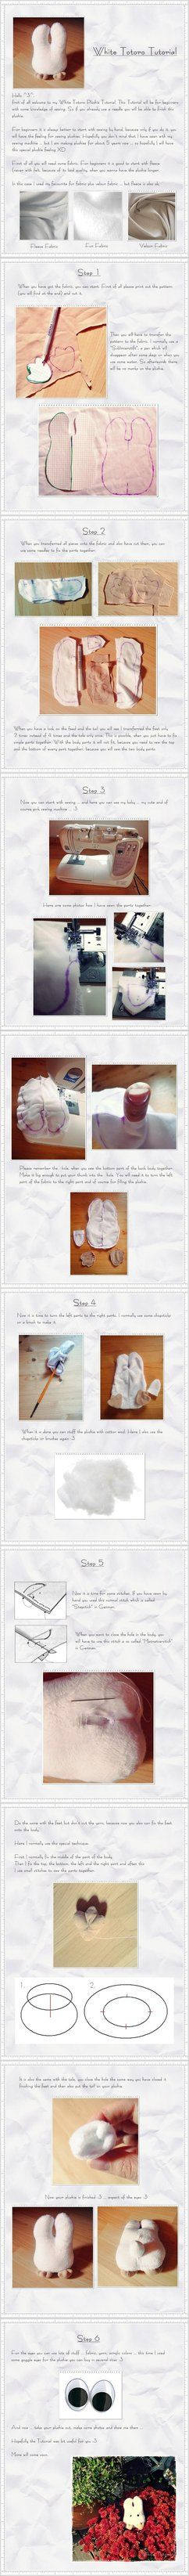 best D I Y images on Pinterest Halloween crafts Cool ideas and